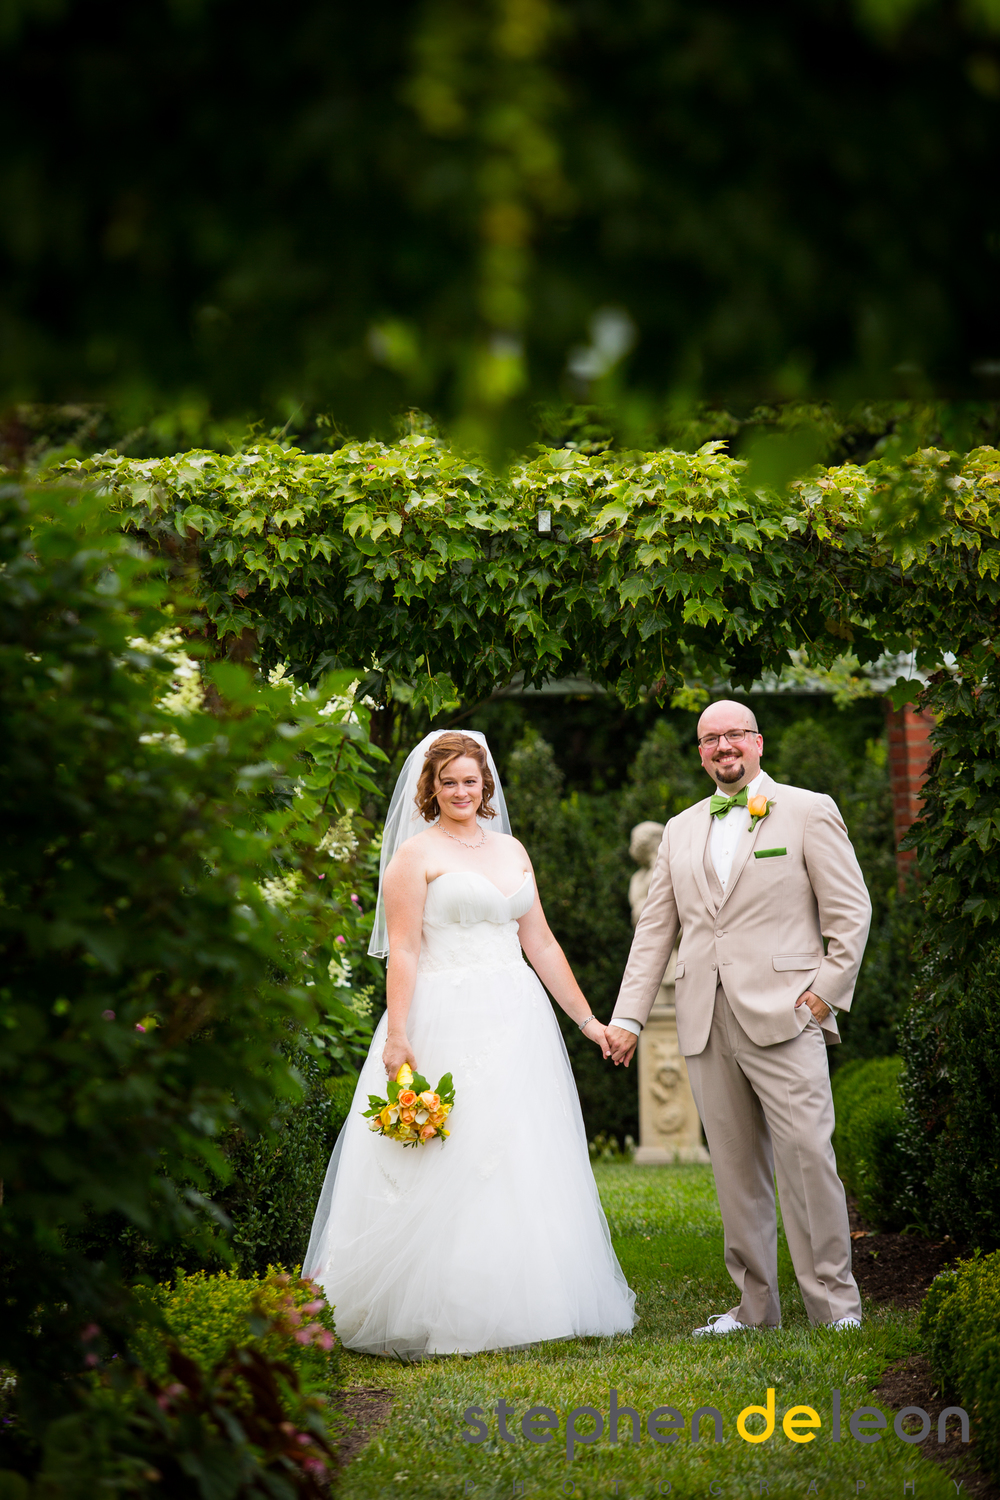 River_Farms_Wedding_040.jpg